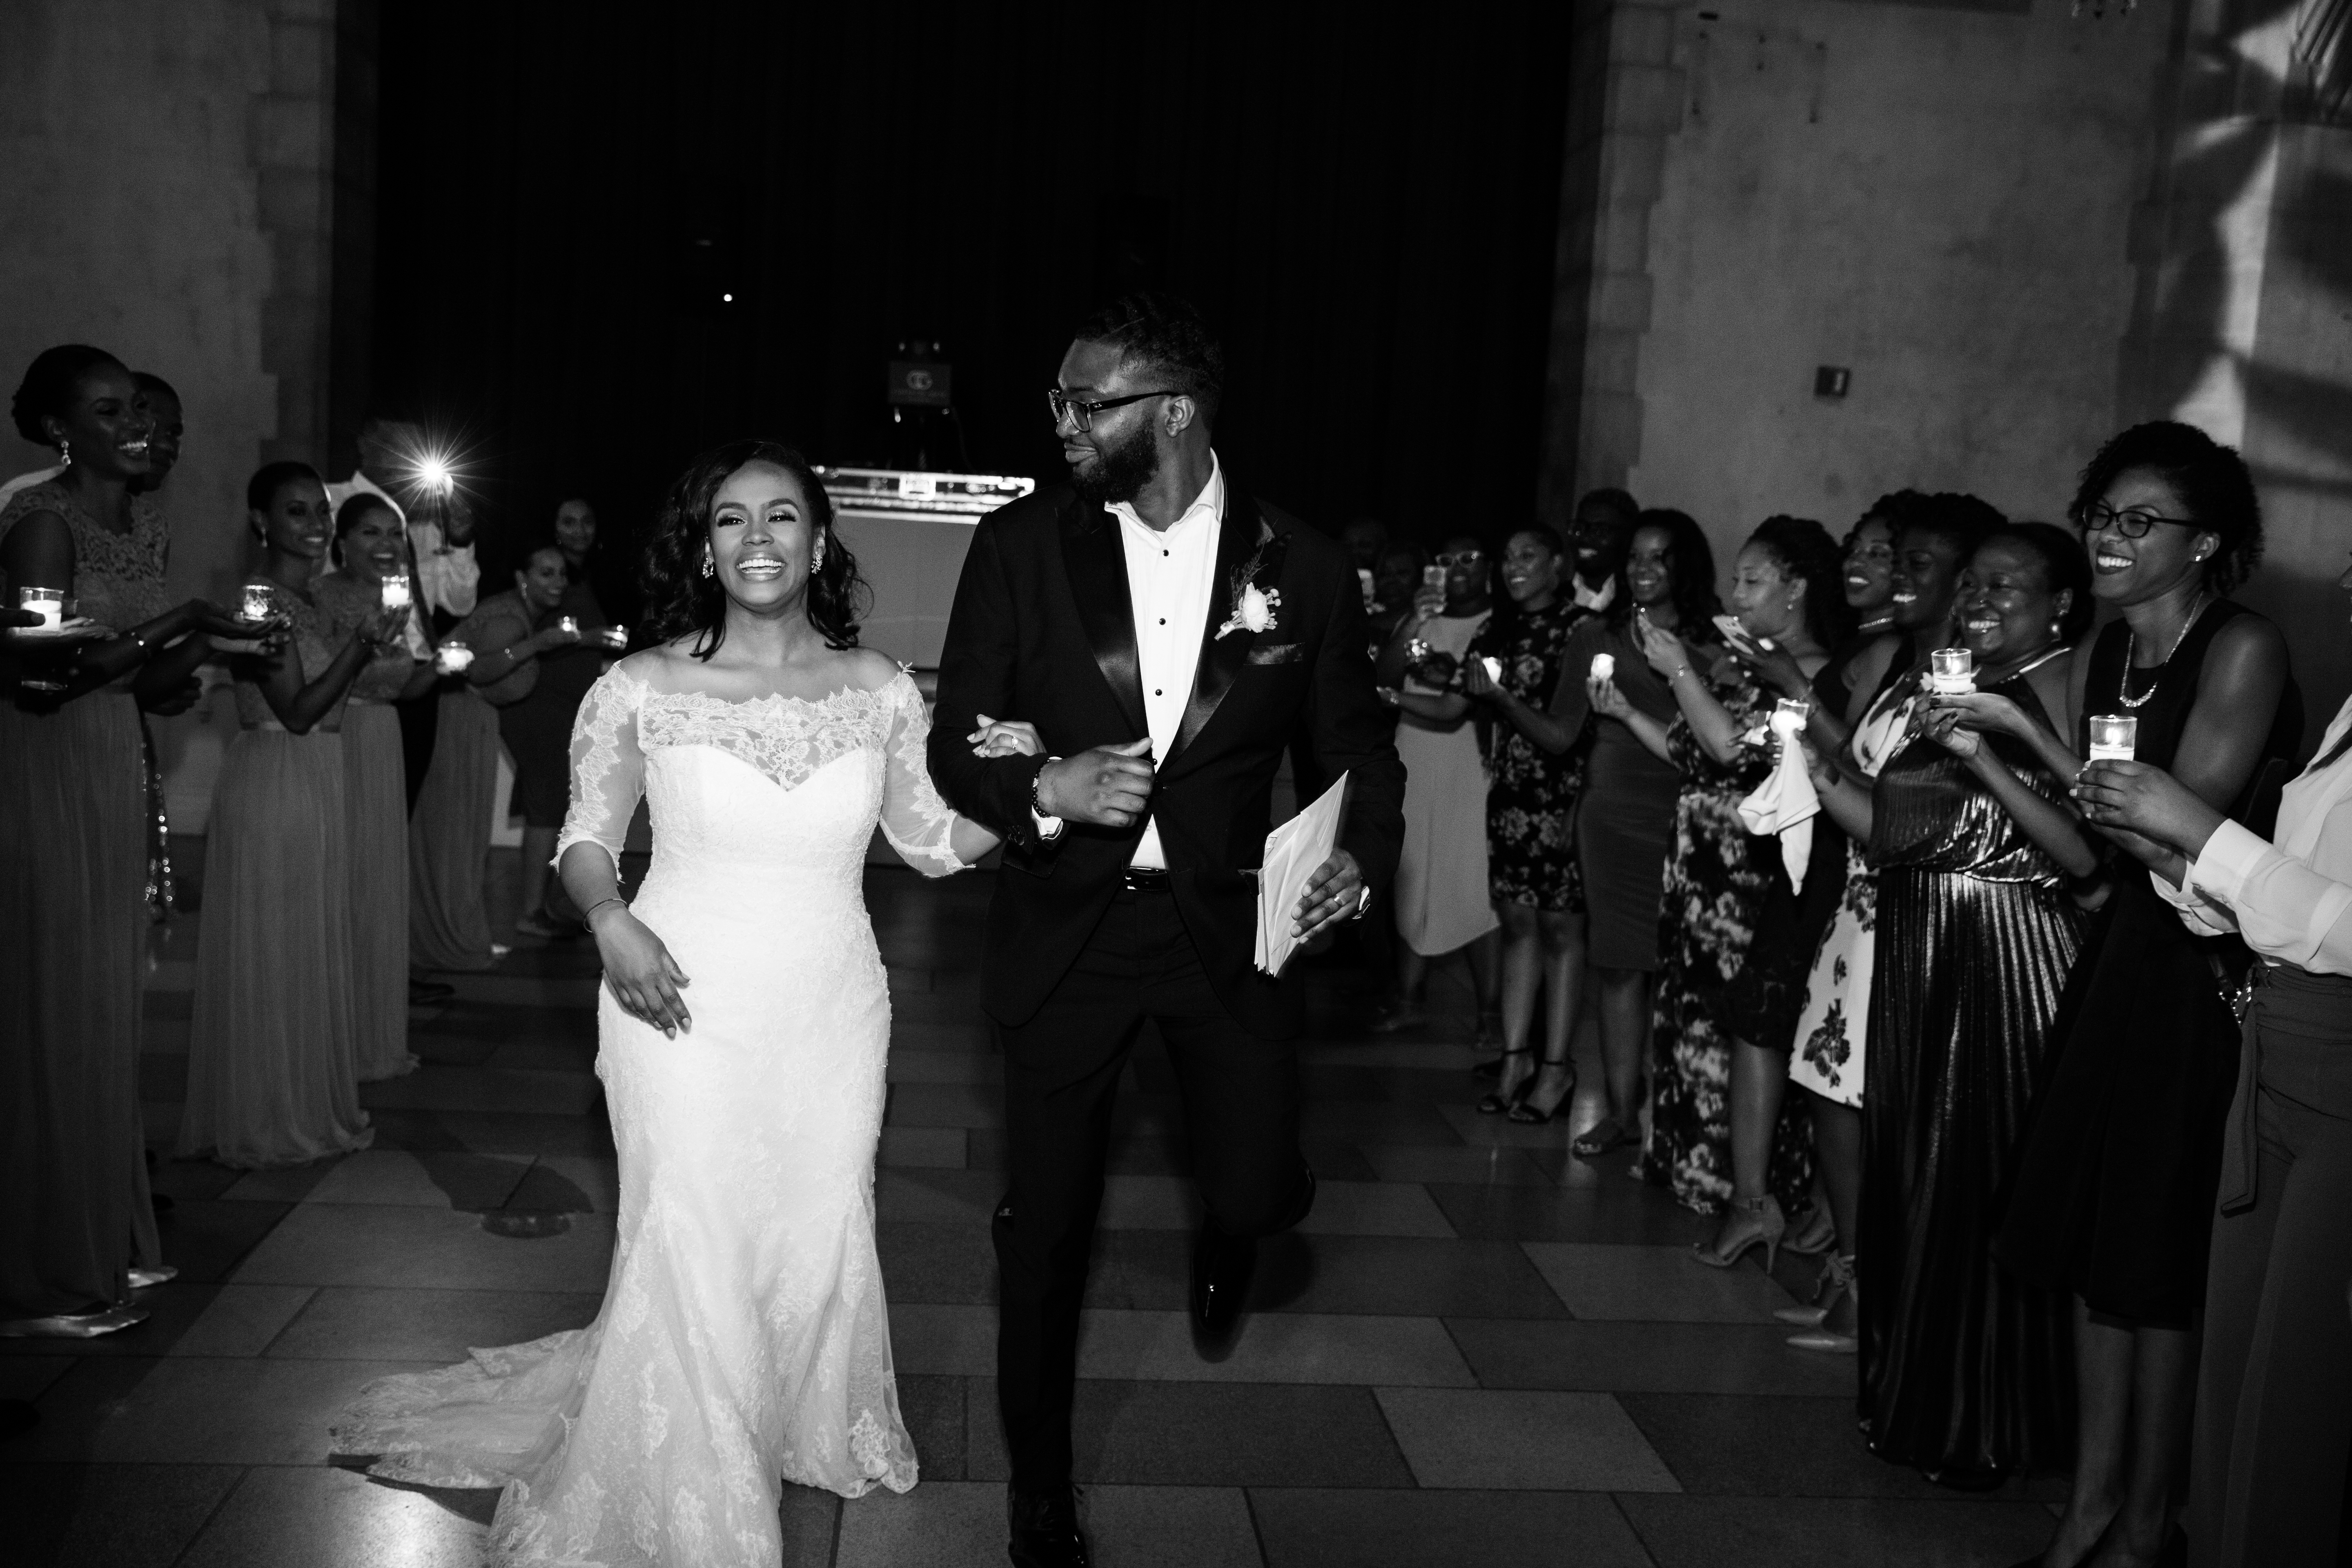 chic black couple wedding reception exit